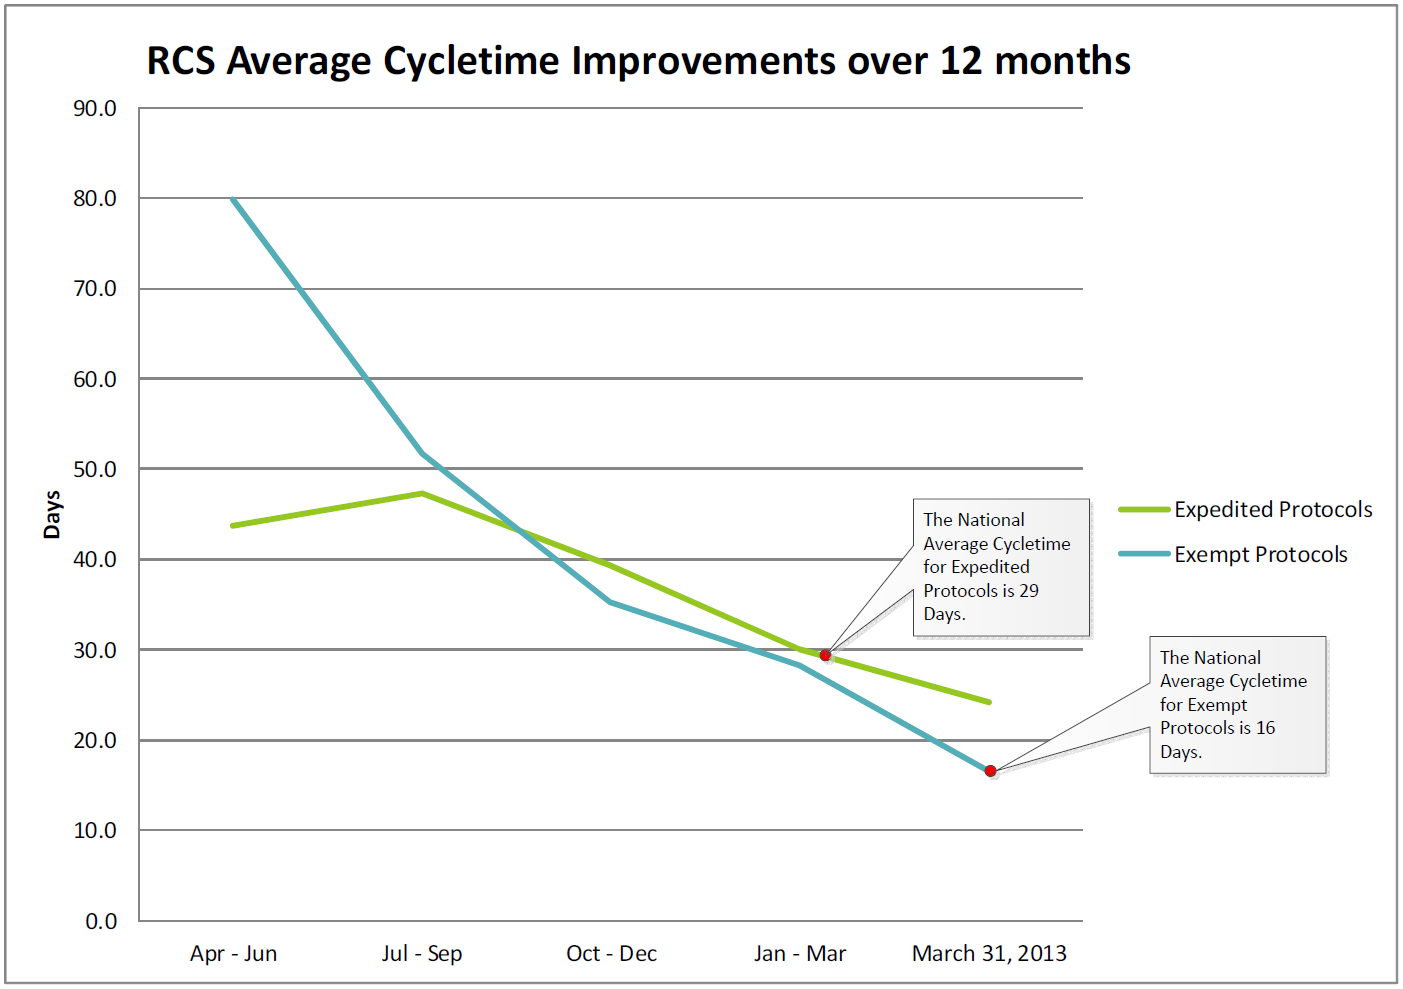 RCS Average Cycletime Improvements over 12 months